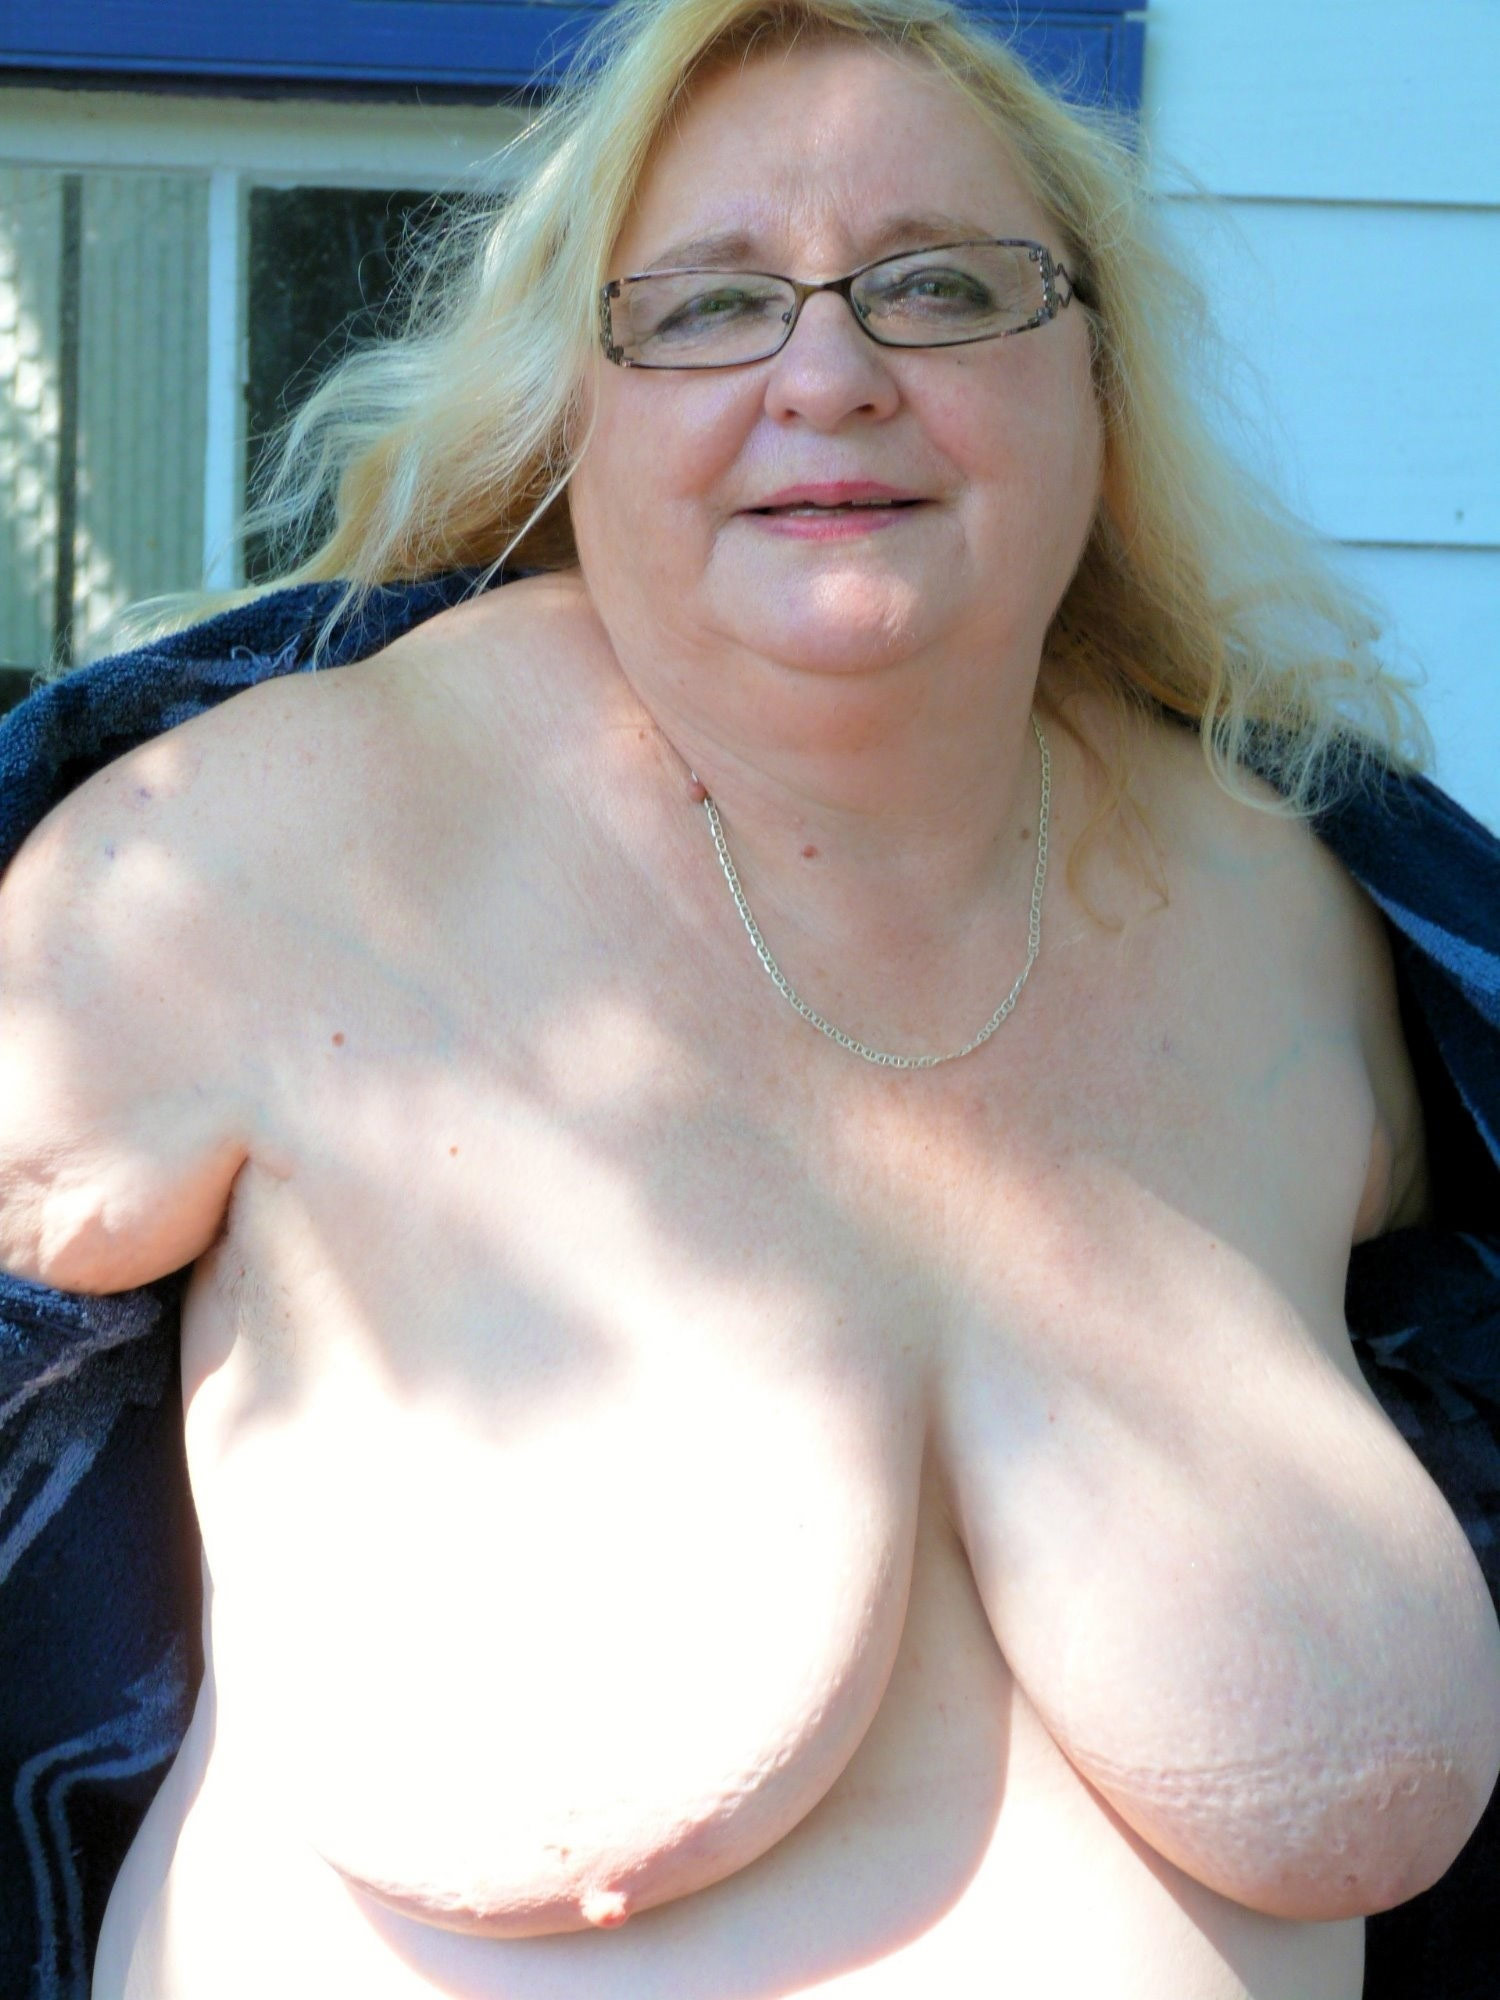 nude photo female